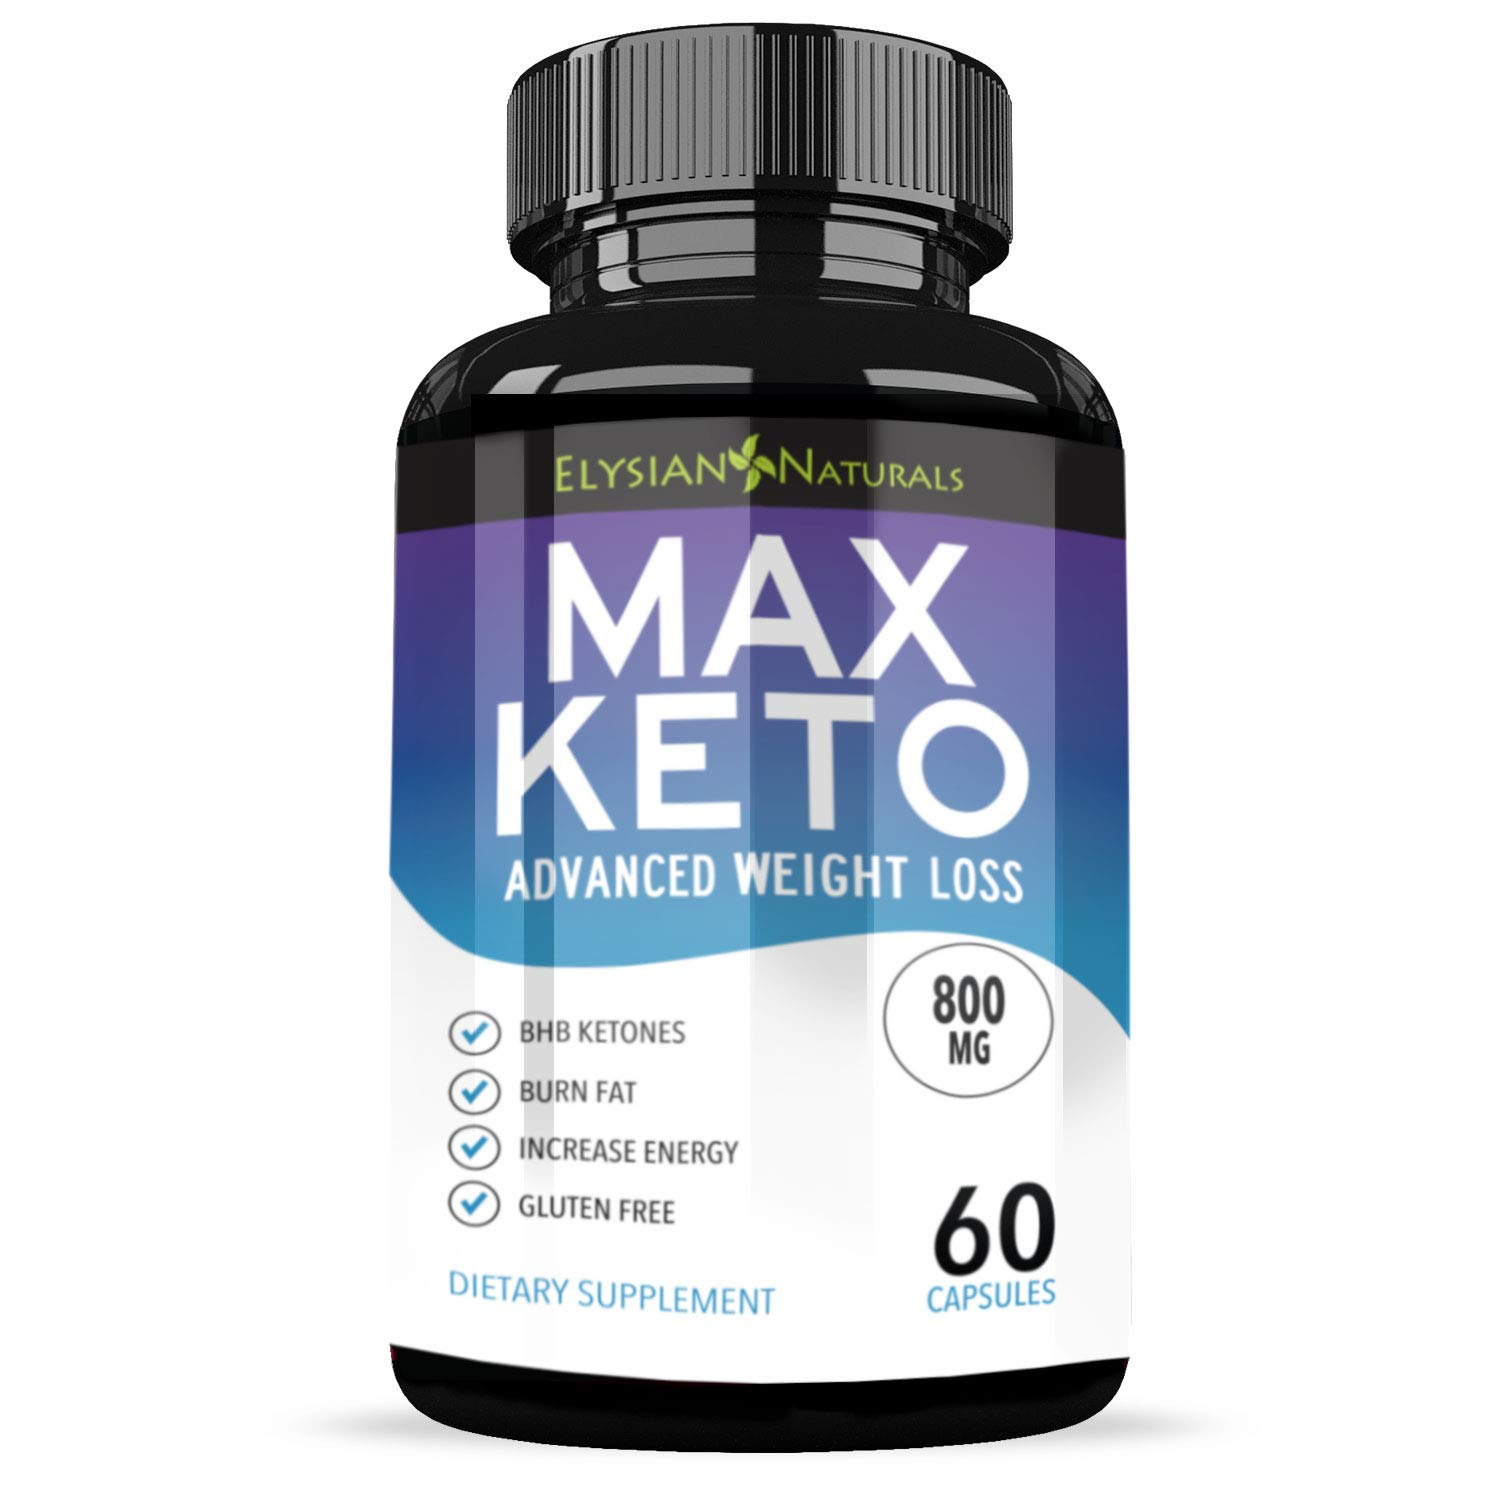 Keto Diet Pills - Weight Loss Supplement and Appetite Suppressant for Women & Men to Burn Fat Fast - Best Ketosis Supplement - Shark Tank Formula - 60 Capsules